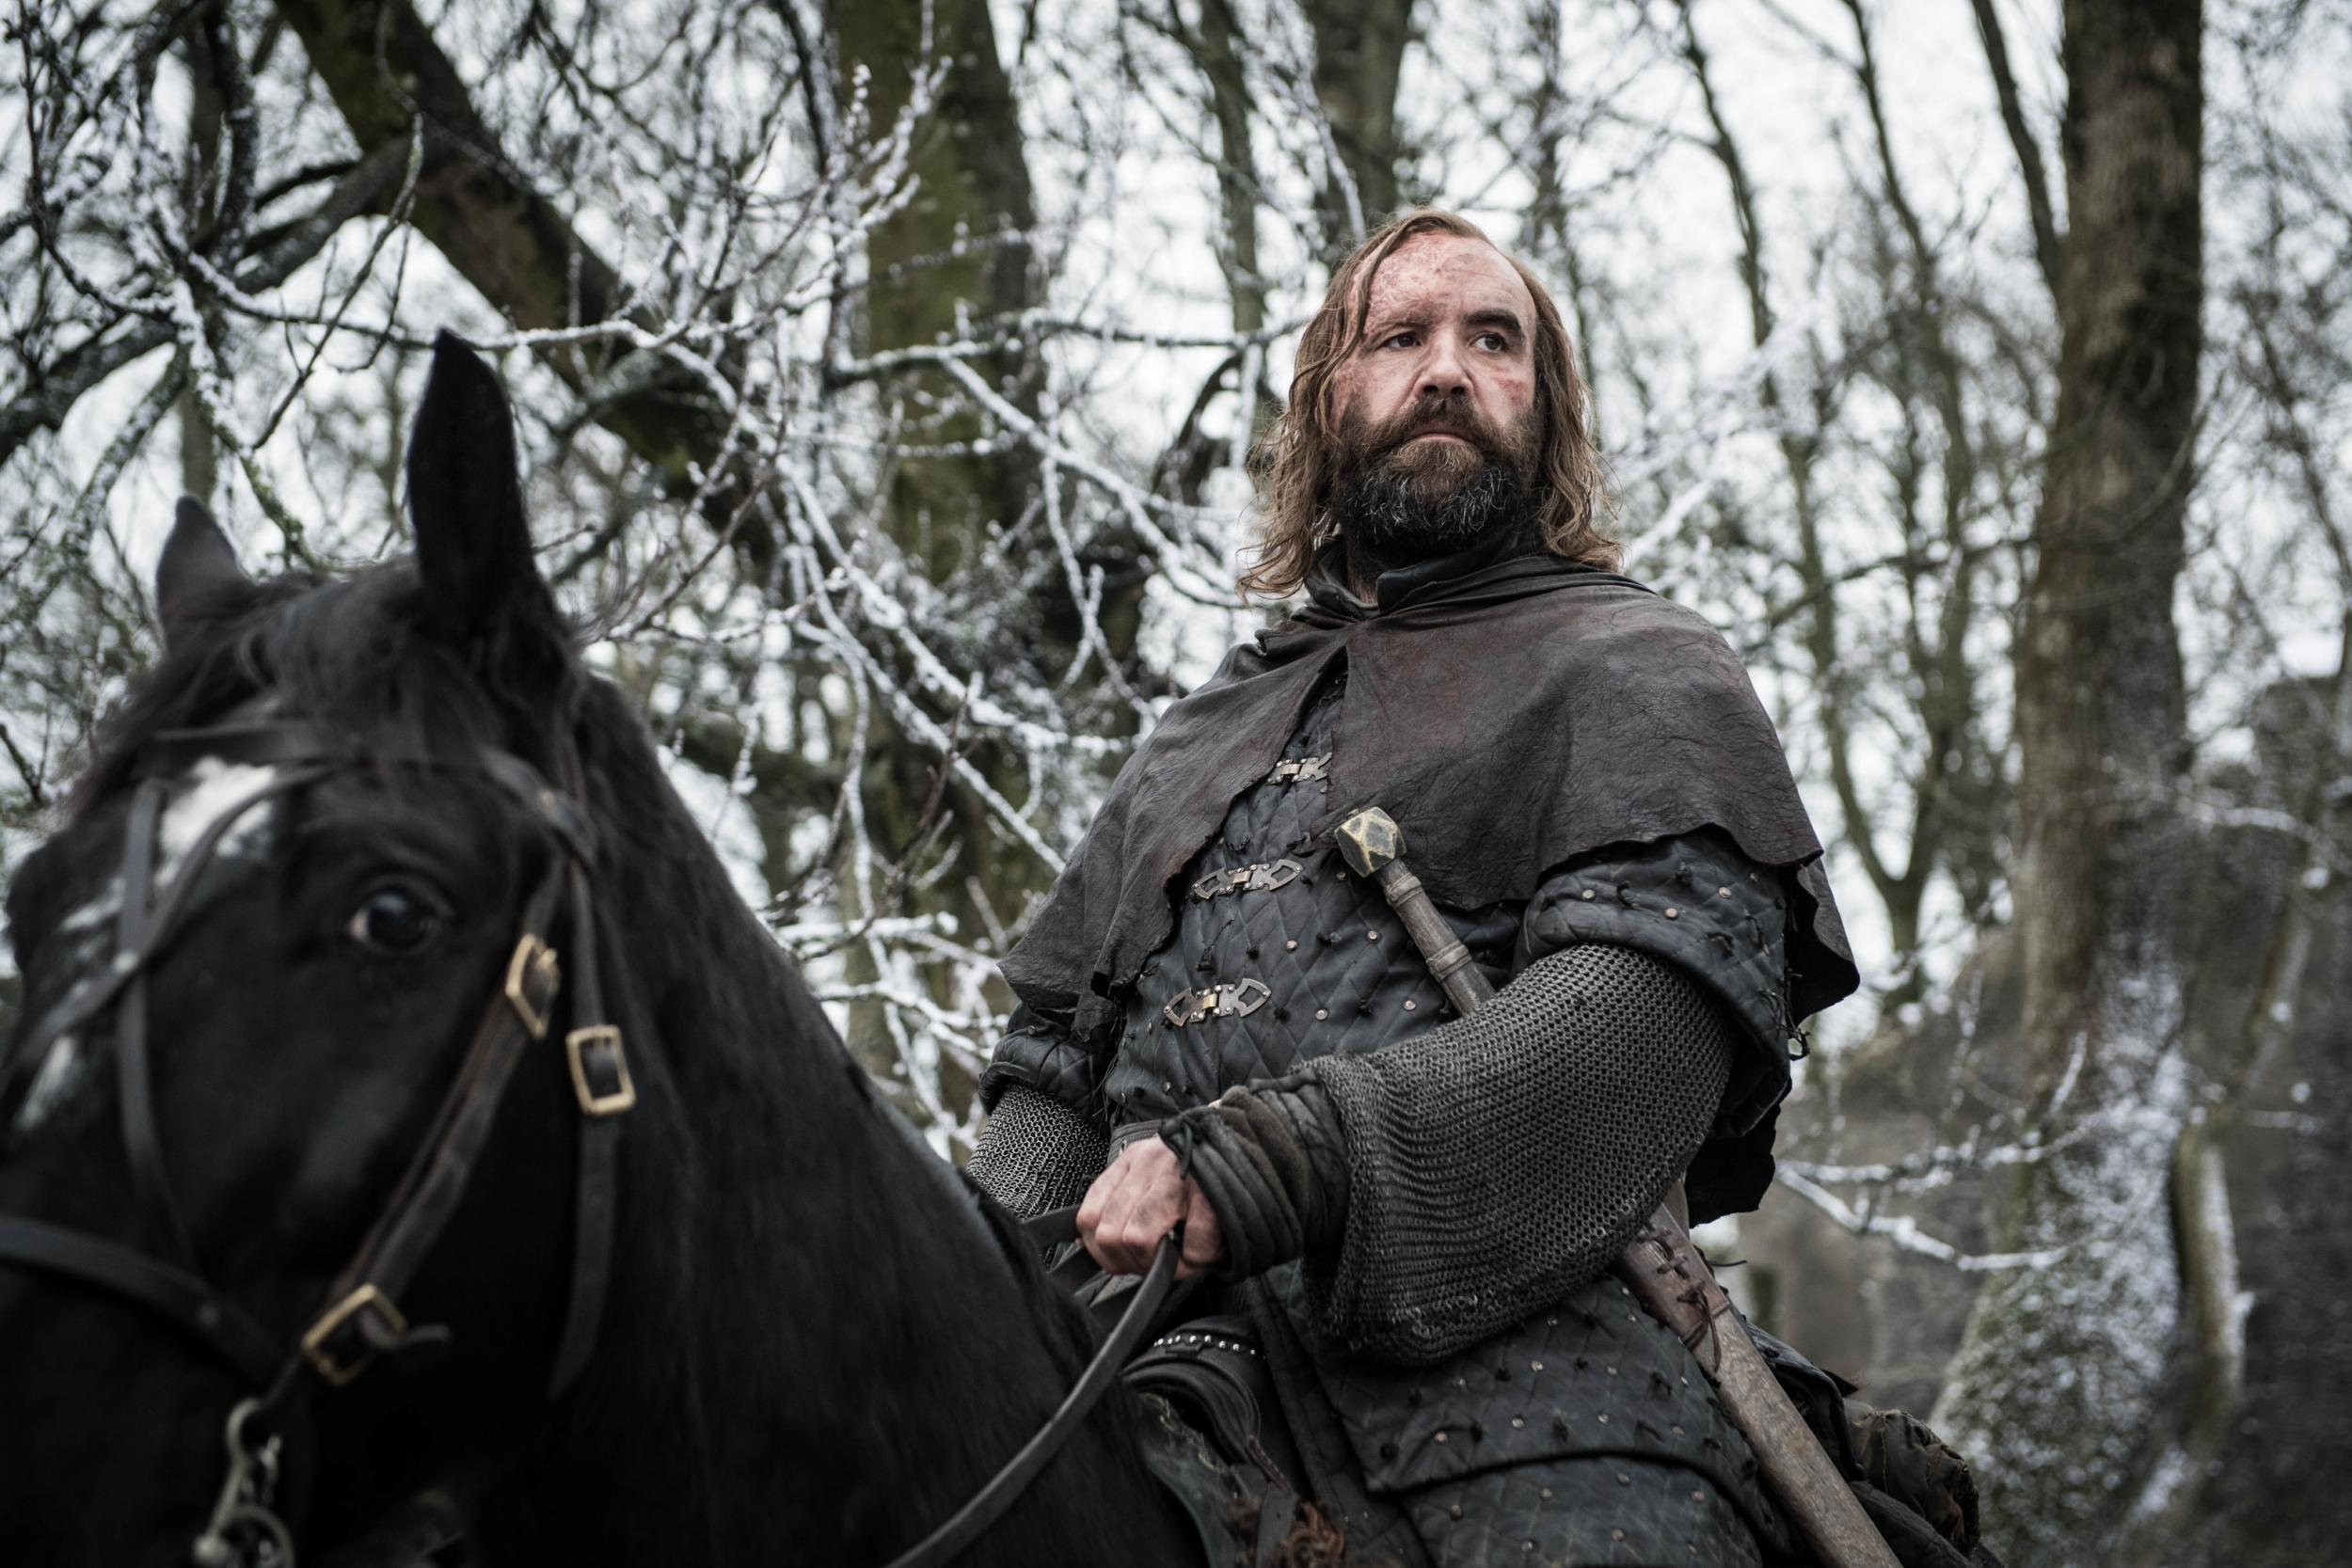 Game of Thrones star Rory McCann says he was living in a tent and 'stealing food' before he landed The Hound role